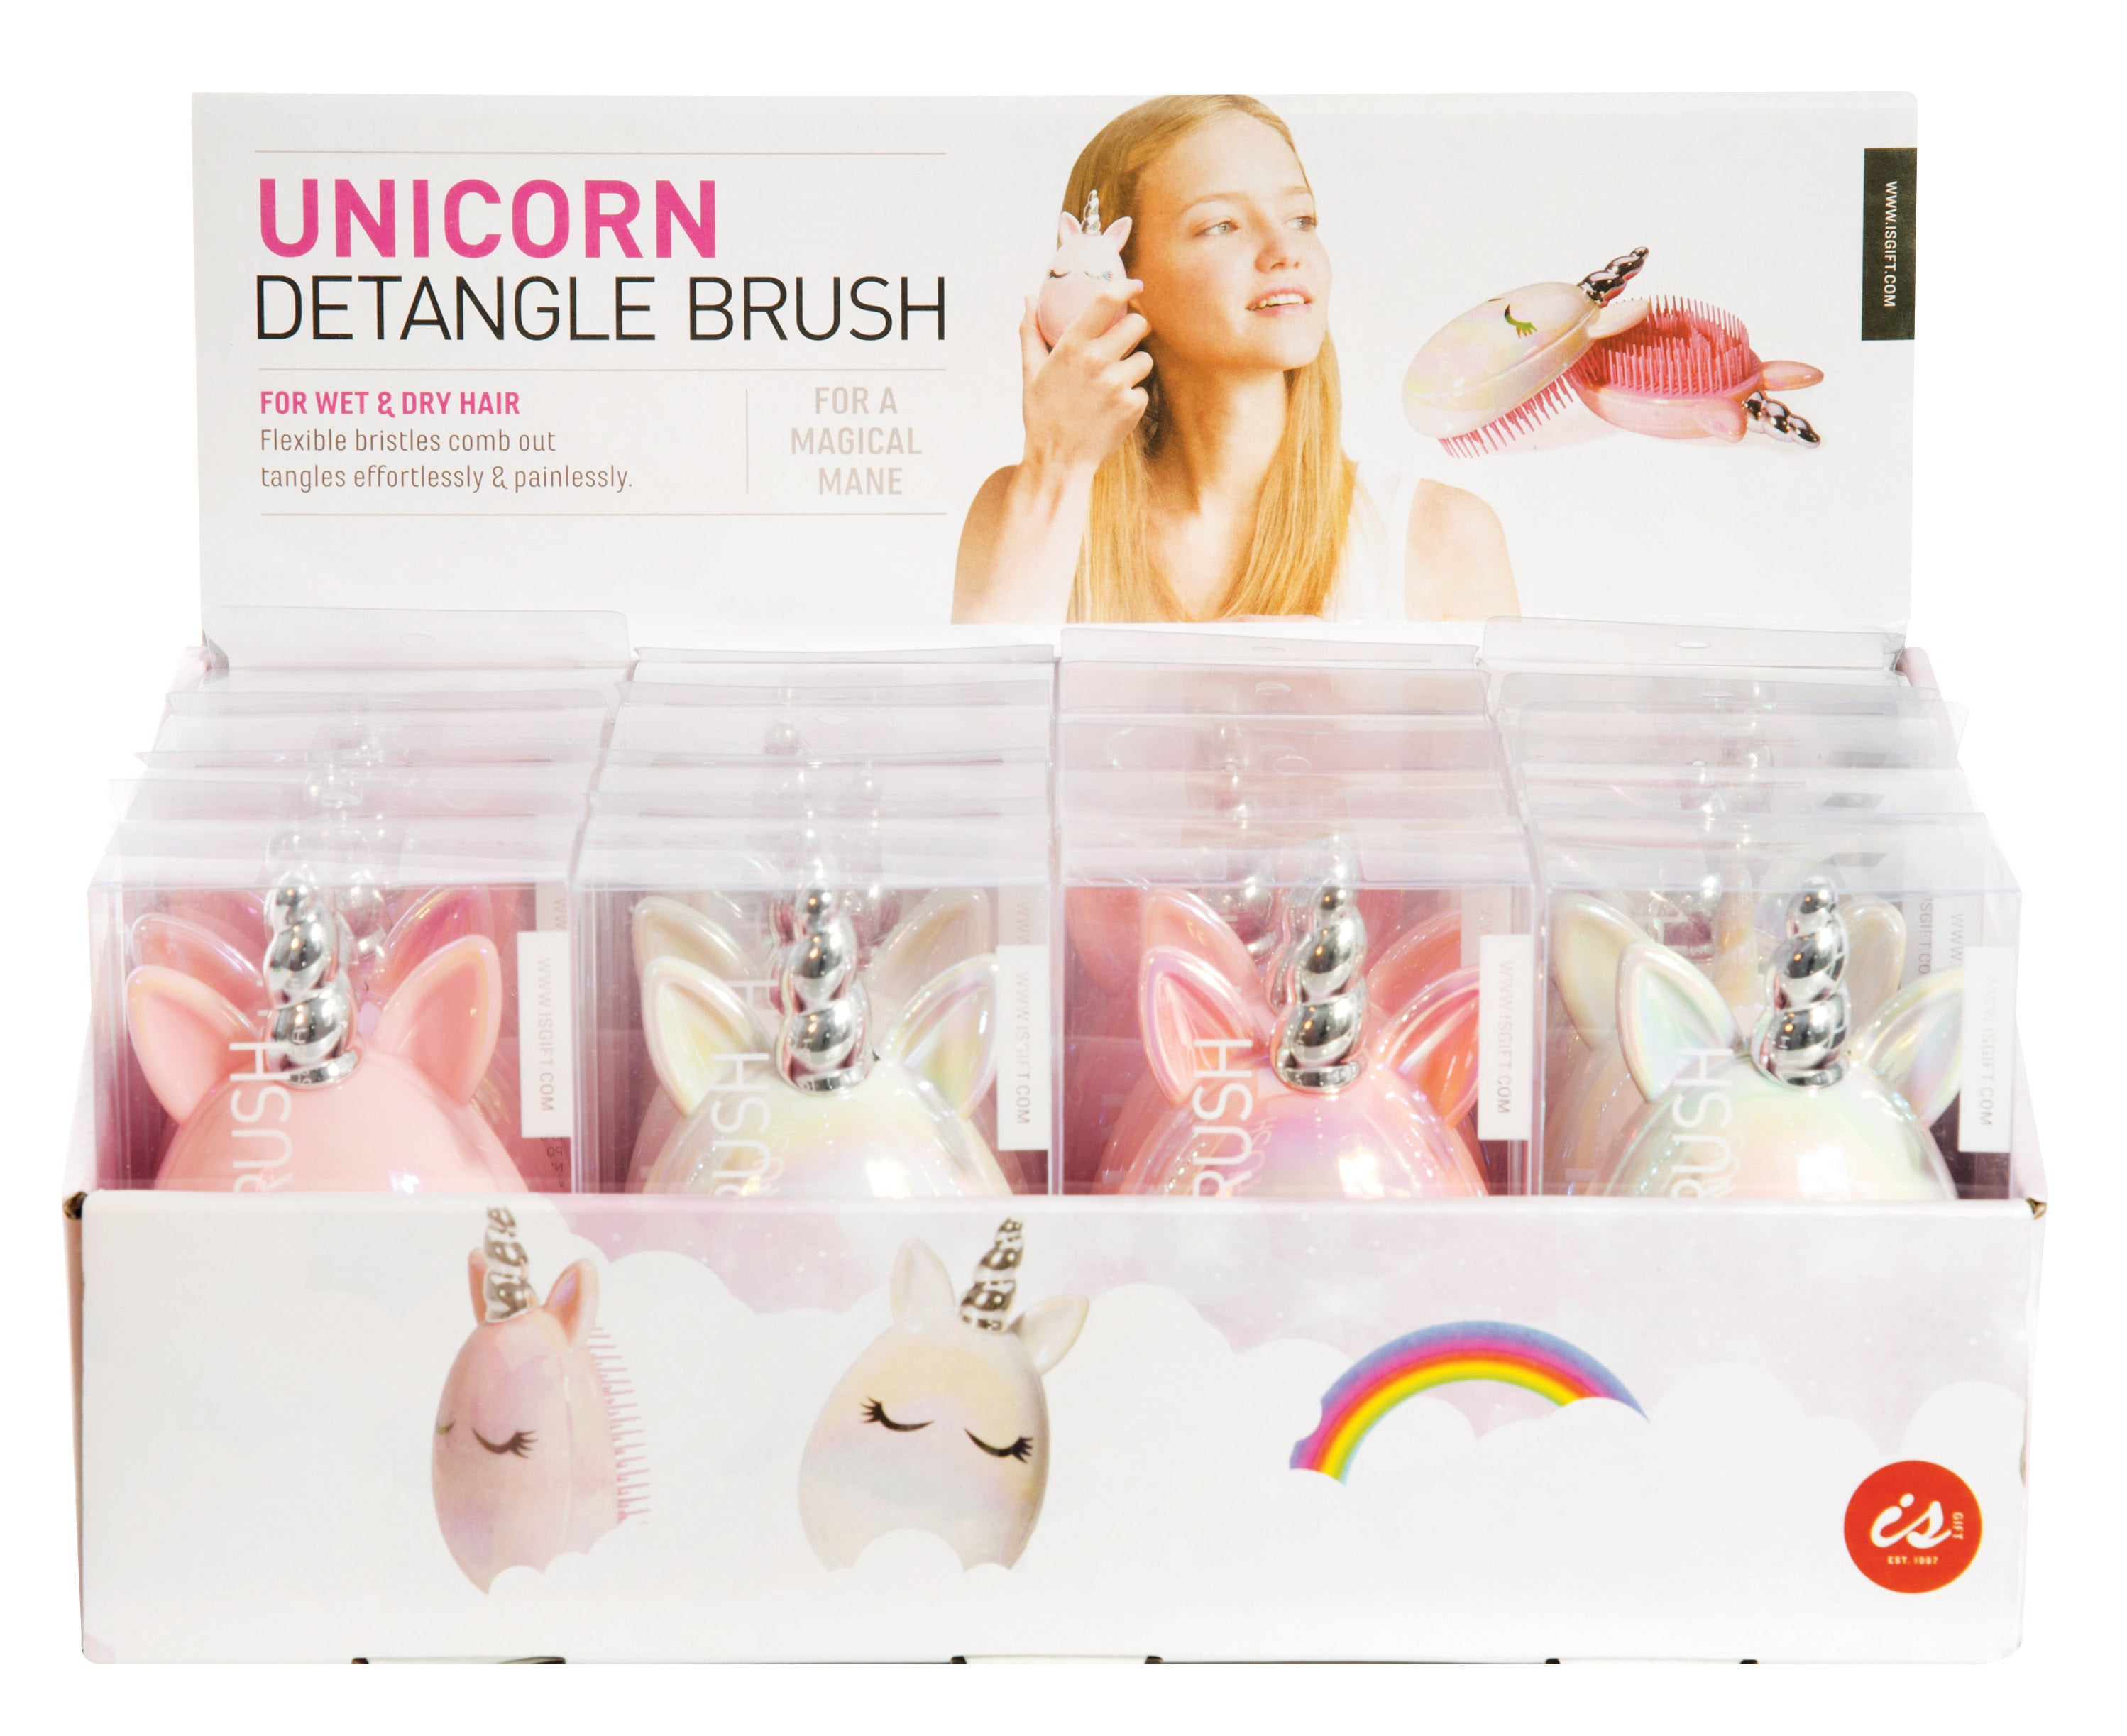 Unicorn Detangle brush